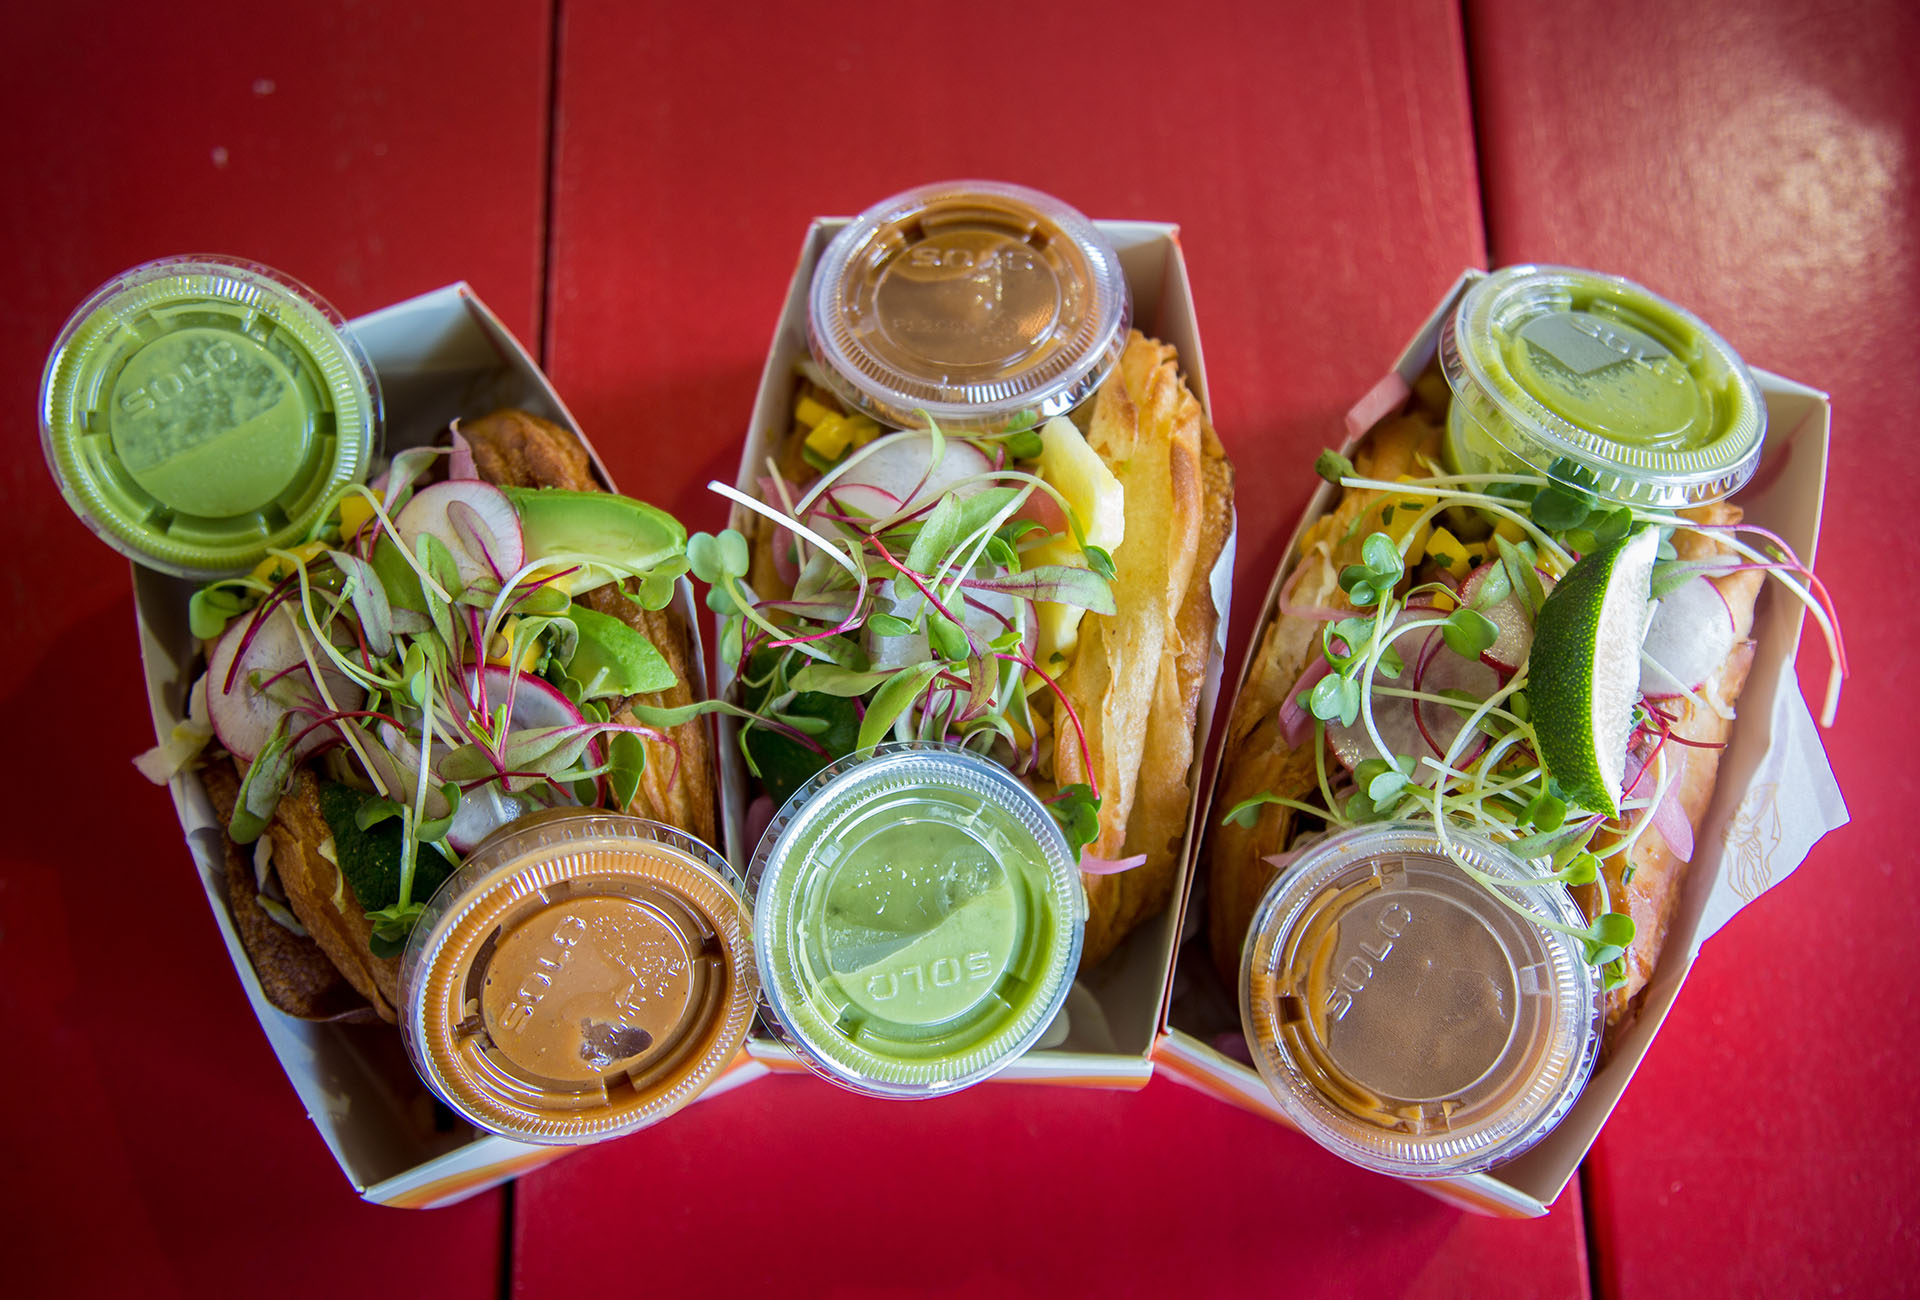 All three varieties of the Tacro including the Jackfruit BBQ, Chicken and Avocado, and Pulled Pork and Pineapple.